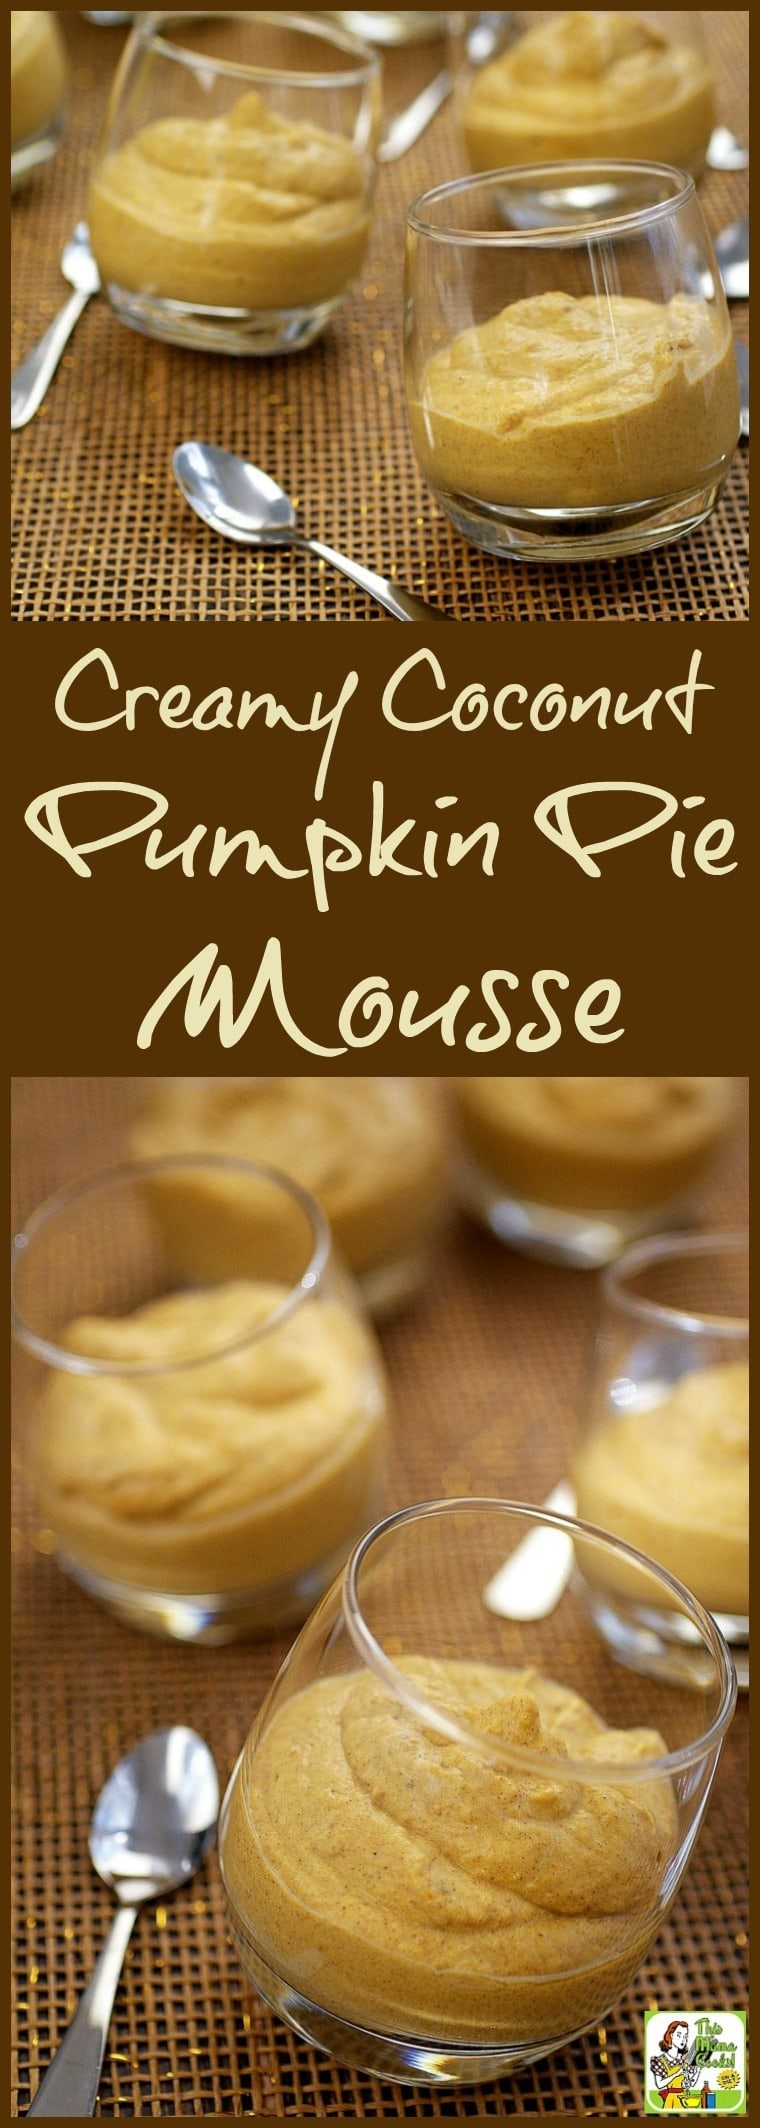 This Creamy Coconut Pumpkin Pie Mousse recipe is vegan, gluten free, dairy free, paleo, and sugar free. Bring it to your next Halloween, Fall or Thanksgiving party. Click here to get this healthy, easy to make dessert recipe! #pumpkin #coconut #pumpkinpie #glutenfree #vegan #healthy #healthyrecipe #sugarfree #halloween #fall #thanksgiving #dessert #dessertrecipe #mousse #easy #paleo #nobake #recipe #recipeoftheday #healthyrecipes #easyrecipes #veganfood #veganrecipes